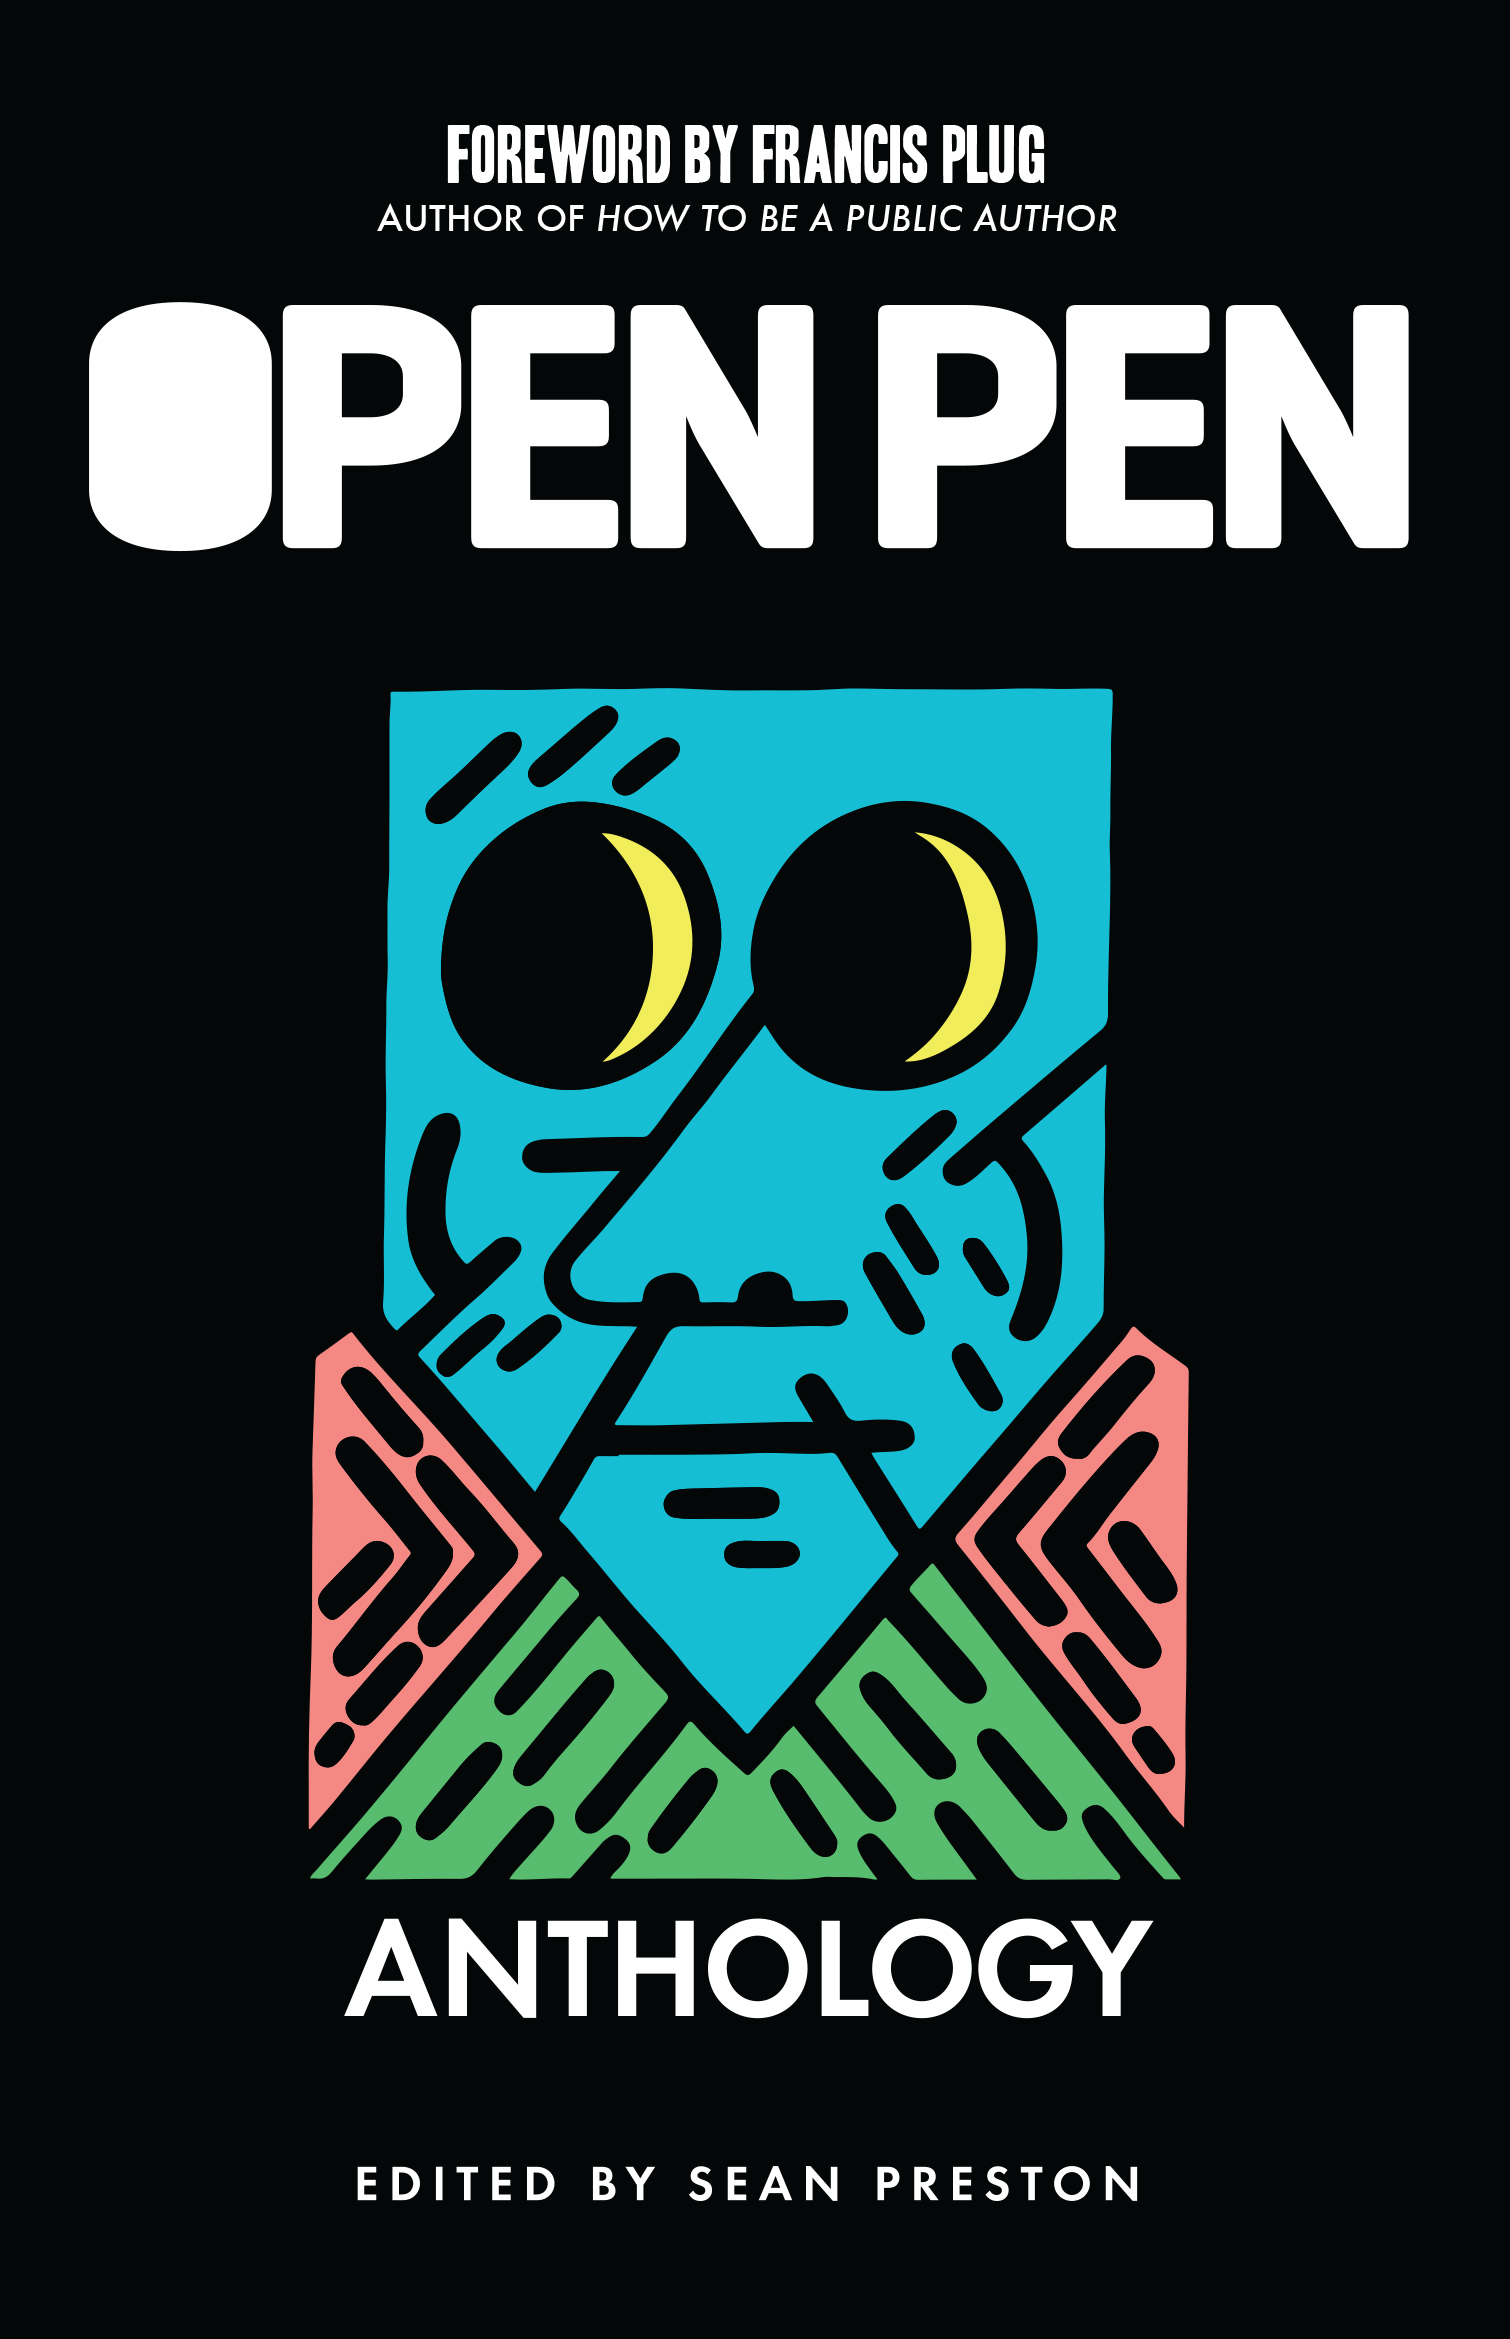 The Open Pen Anthology – Out March 10th